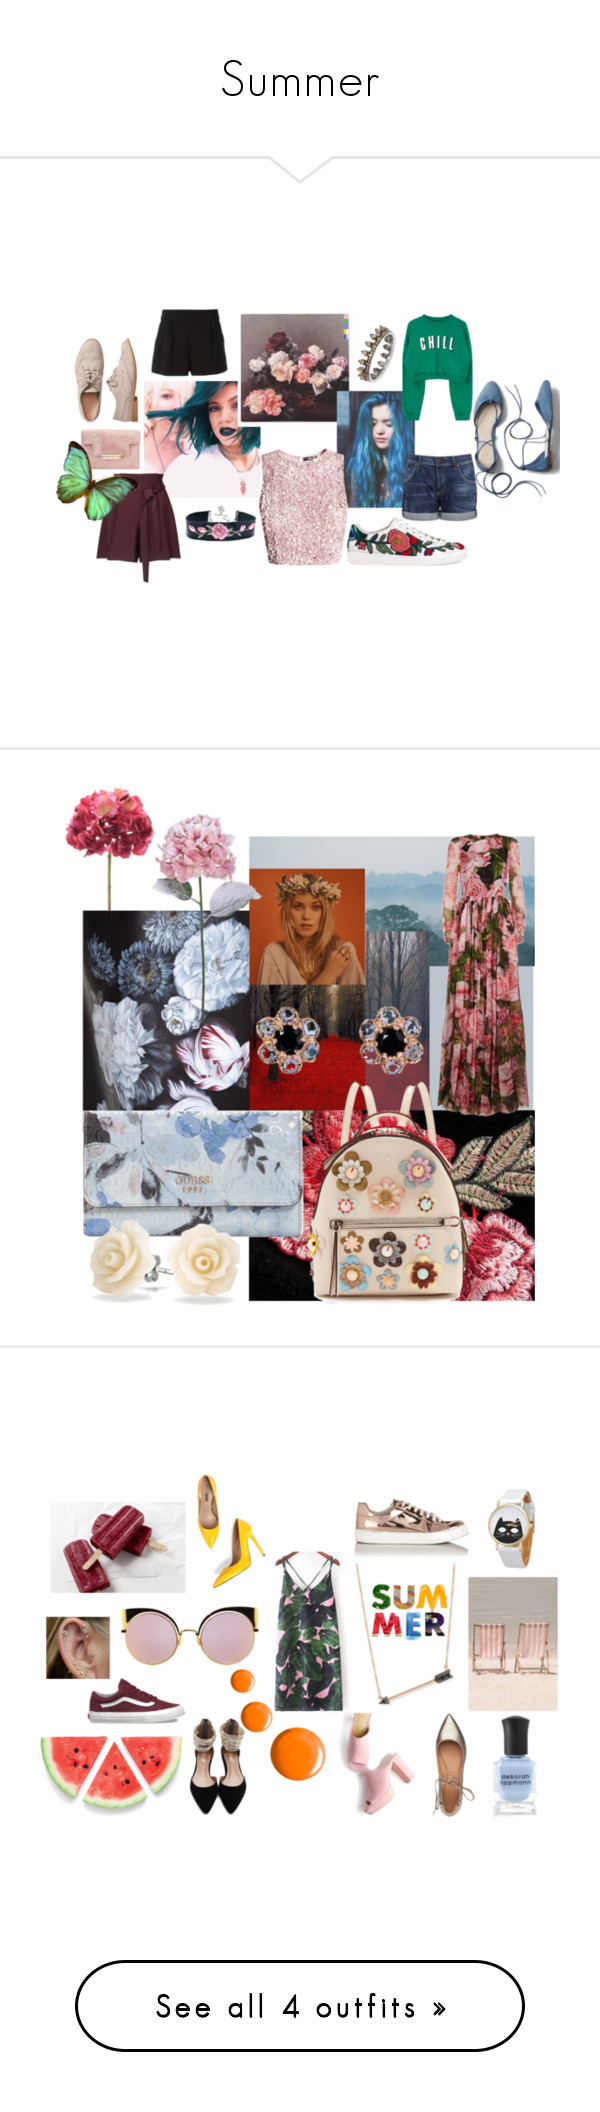 """""""Summer"""" by dakshapathak on Polyvore featuring Boutique Moschino, Miss Selfridge, Citizens of Humanity, Gucci, Gap, Annoushka, Bodas, Dolce&Gabbana, Alexander McQueen and Fendi"""